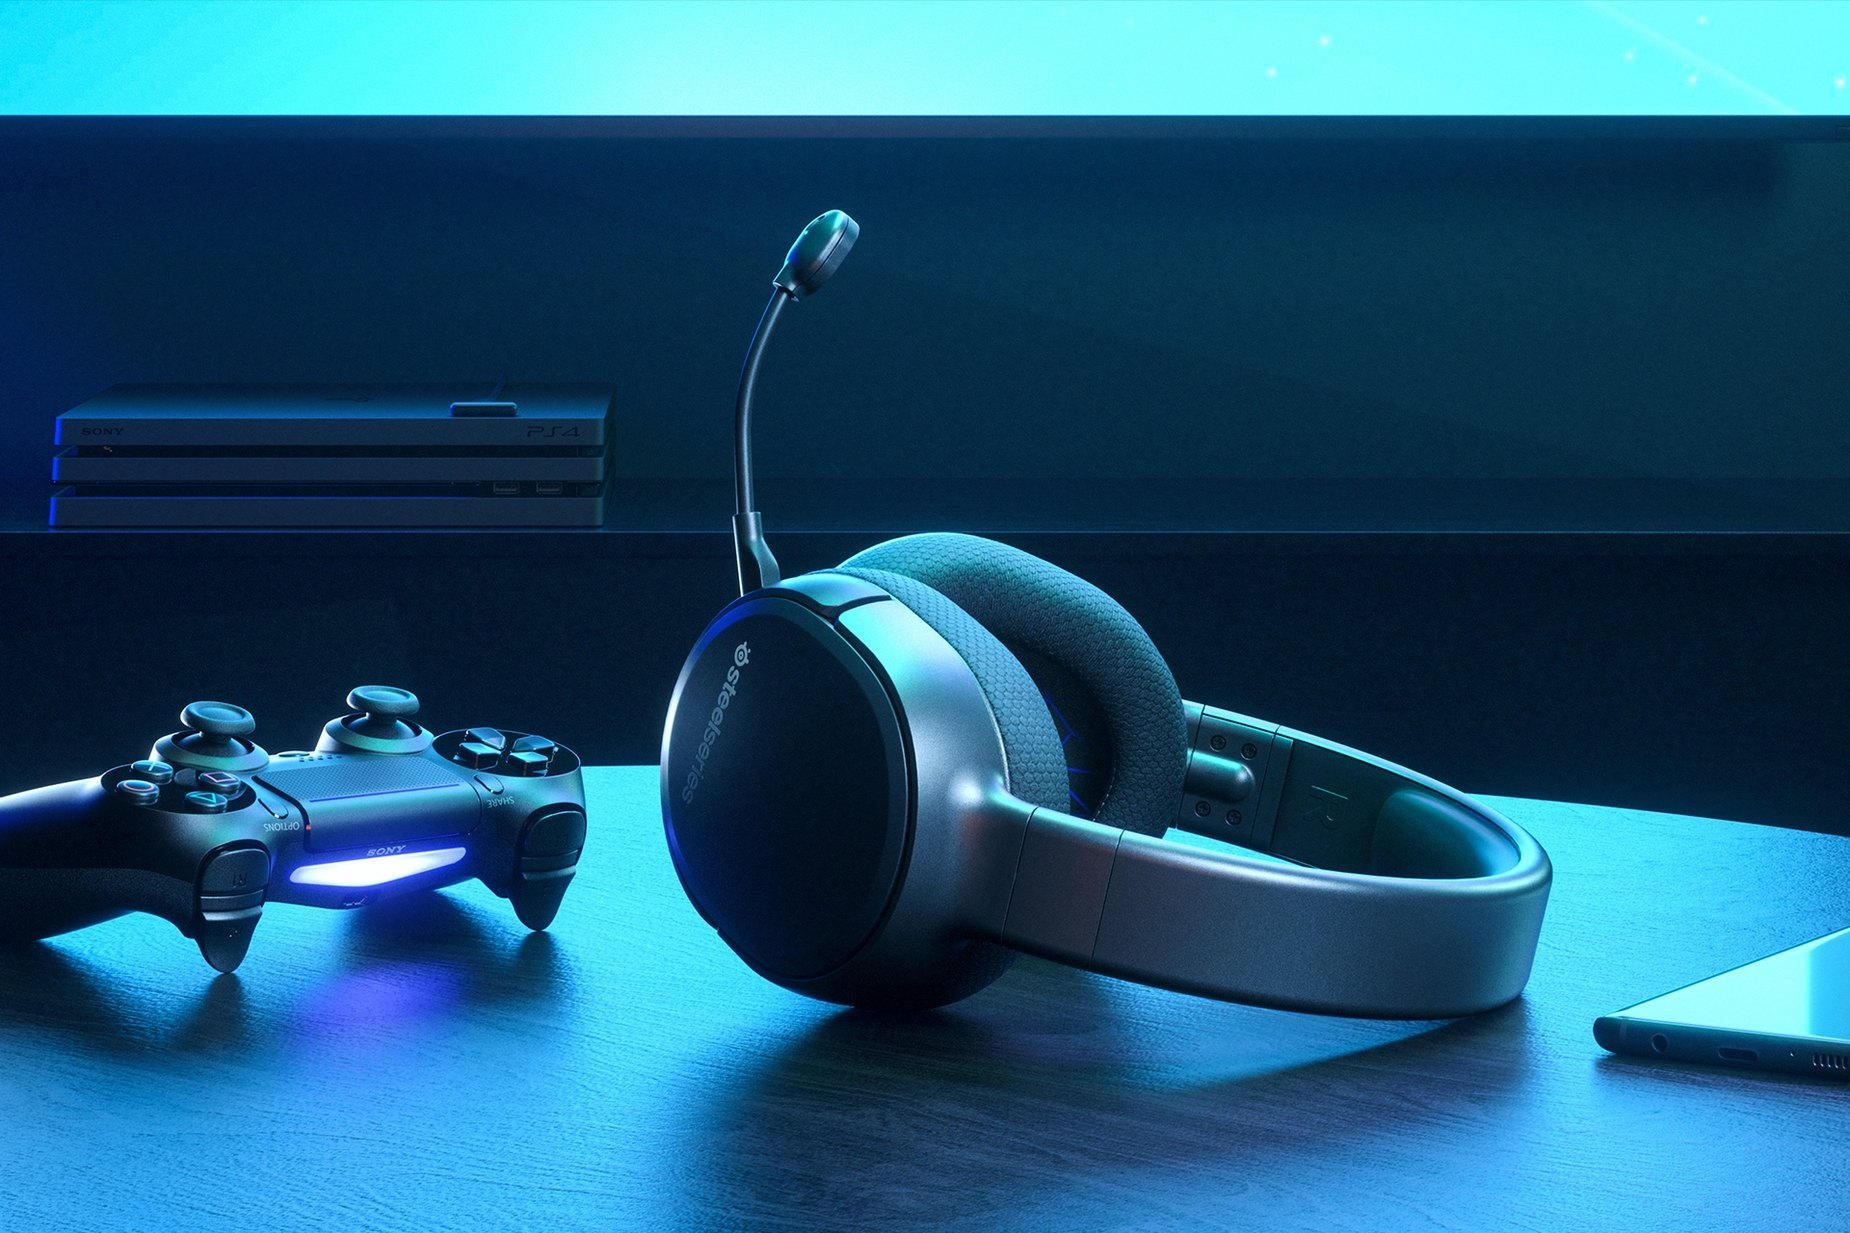 Arctis 1 Wireless for PS4 gaming headset on table with a Playstation controller and a PS4 in the background